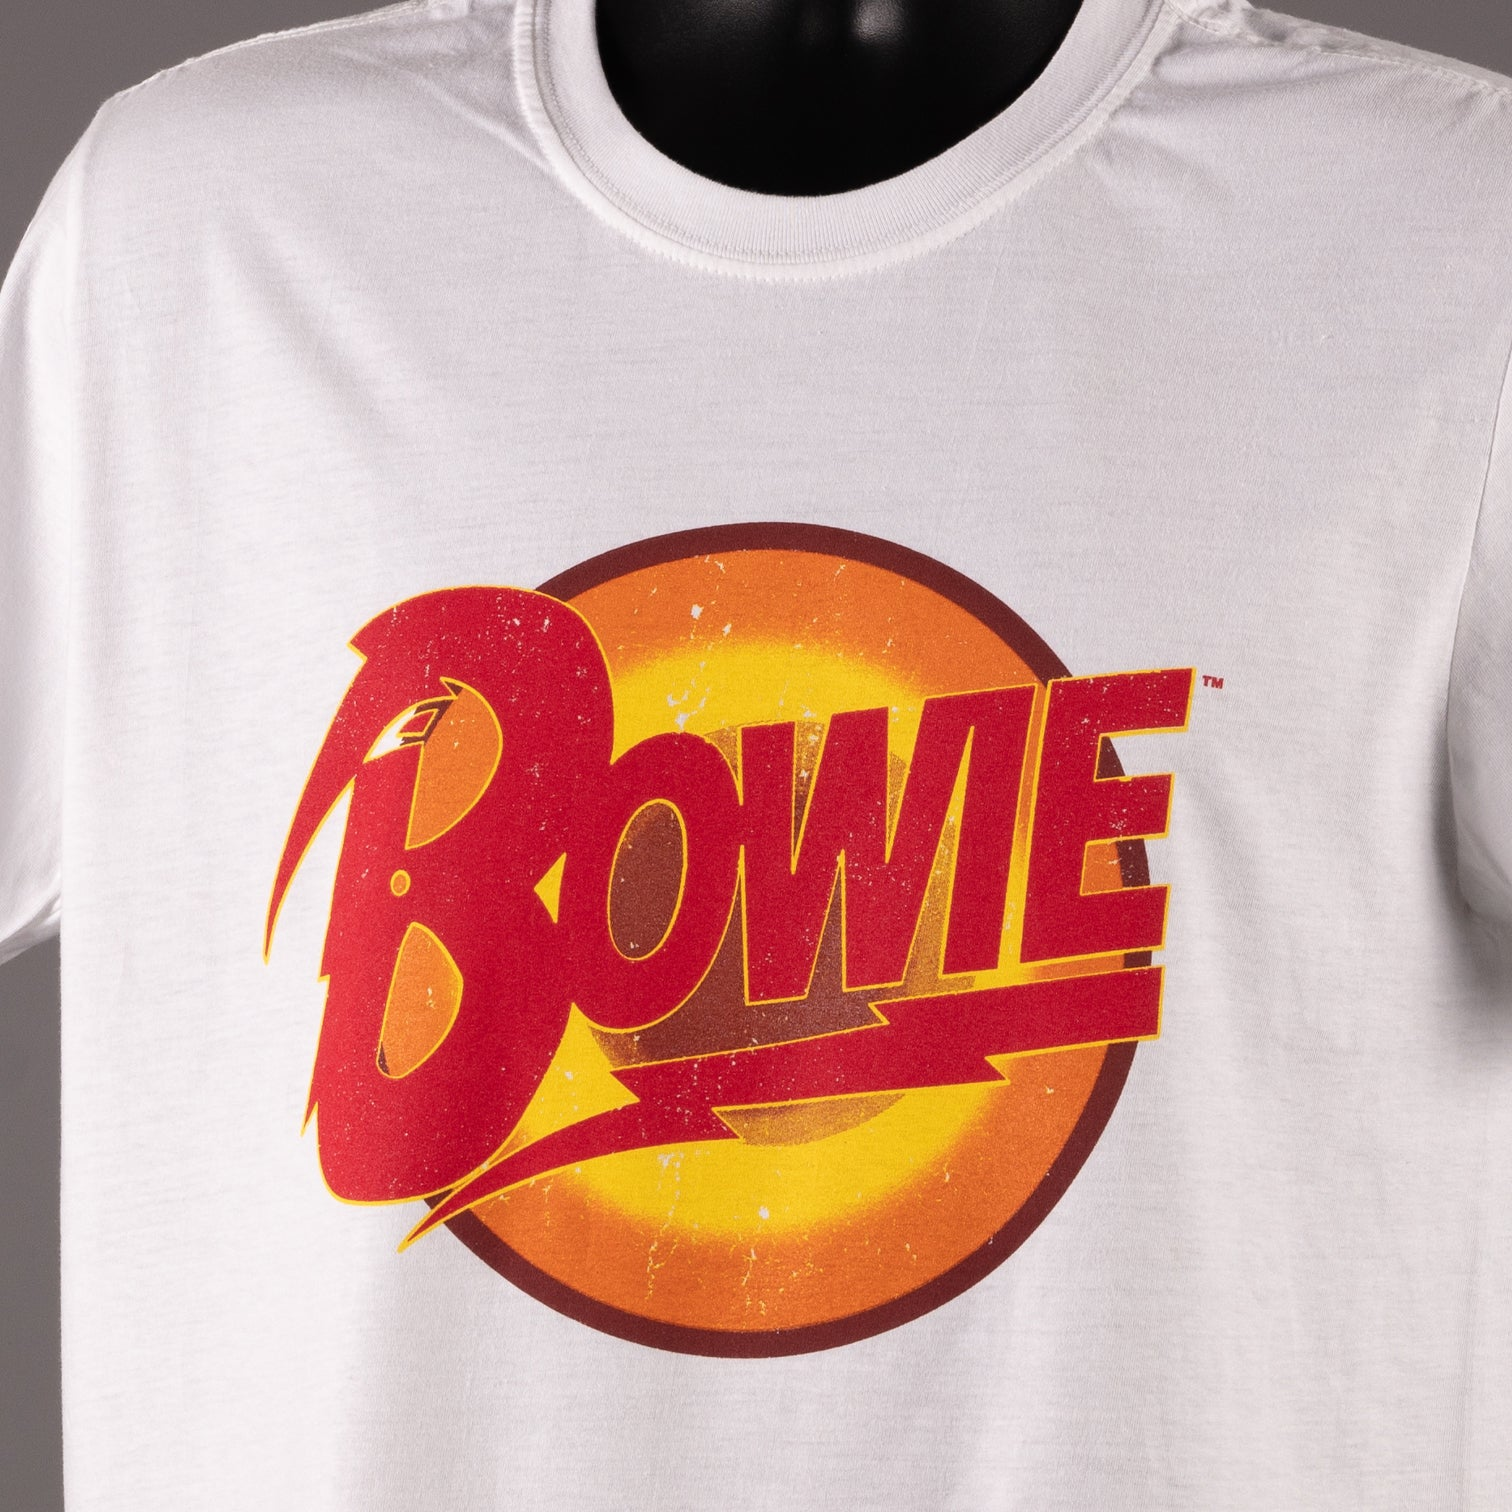 Bowie - Diamond Dogs T Shirt - White